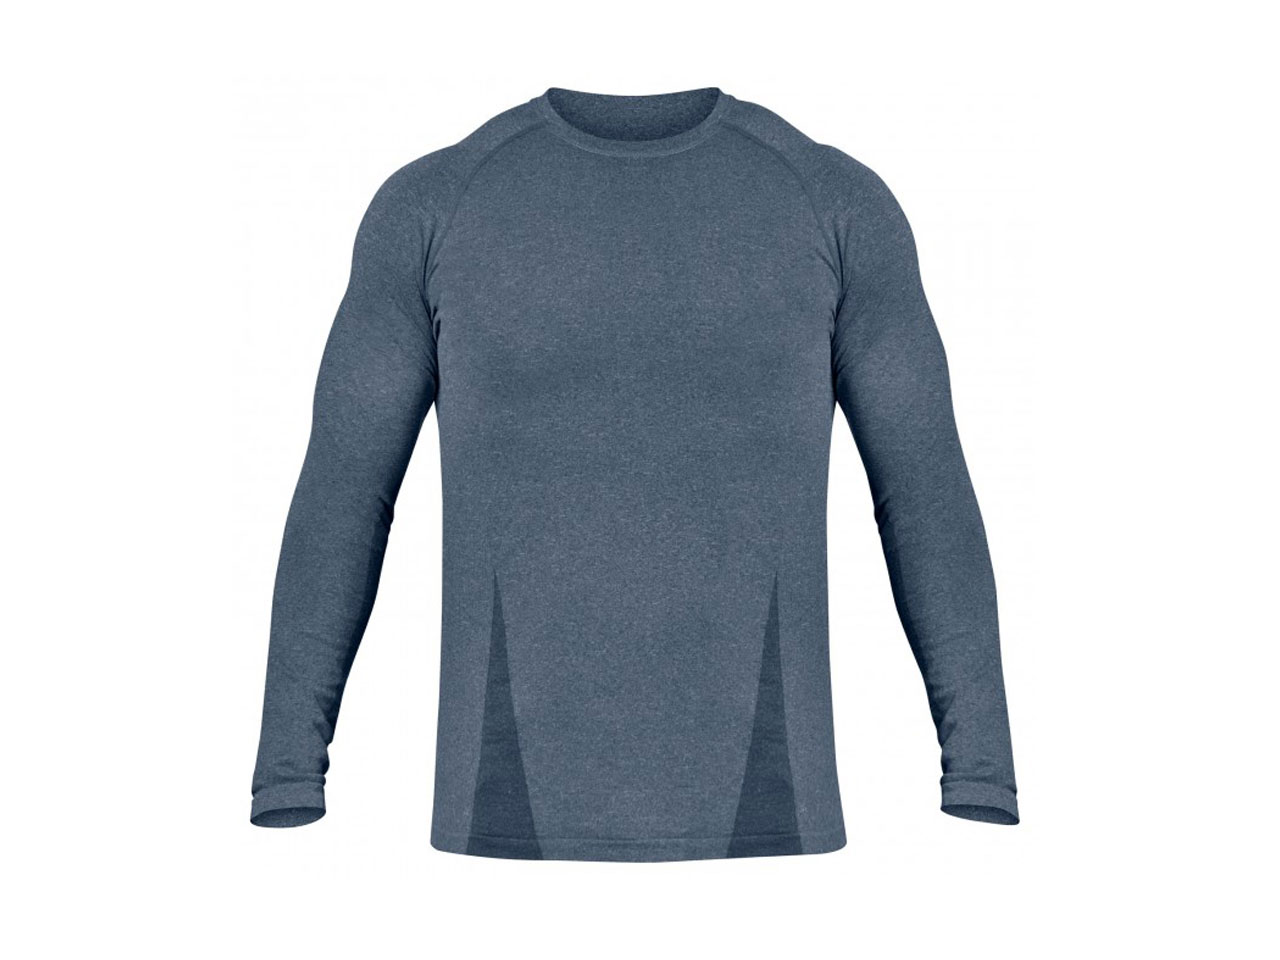 e5f4f4f7 Best Training, Lifting, and Workout Gear for Men: Fall 2017